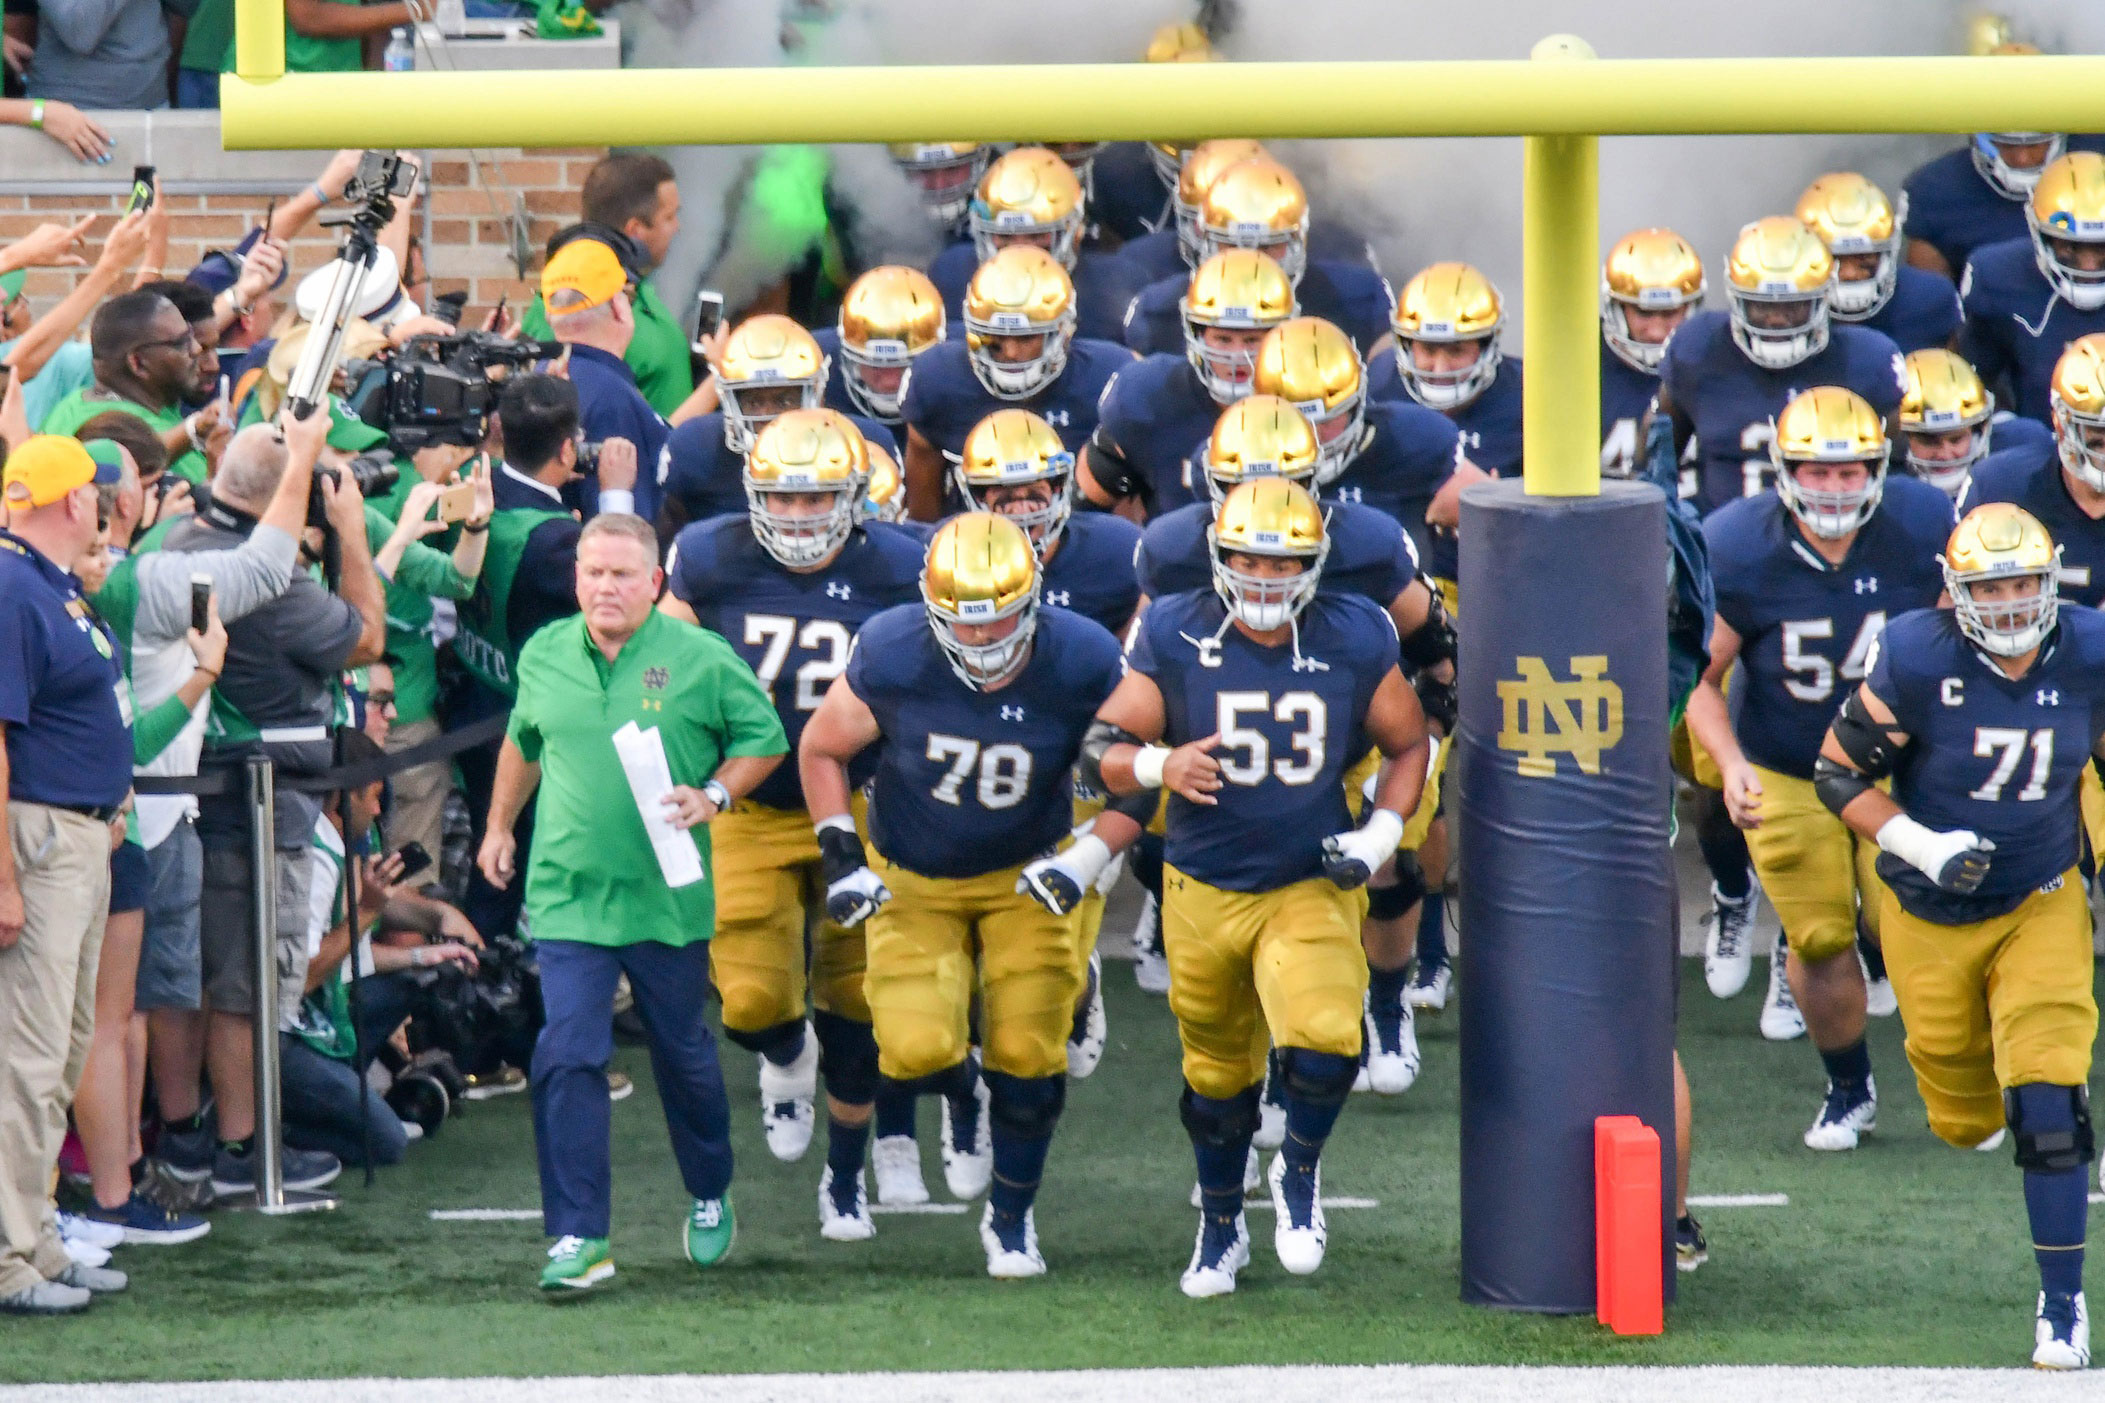 Notre Dame Football Schedule 2019 >> Notre Dame Football's Depth Chart for Ball State // UHND.com